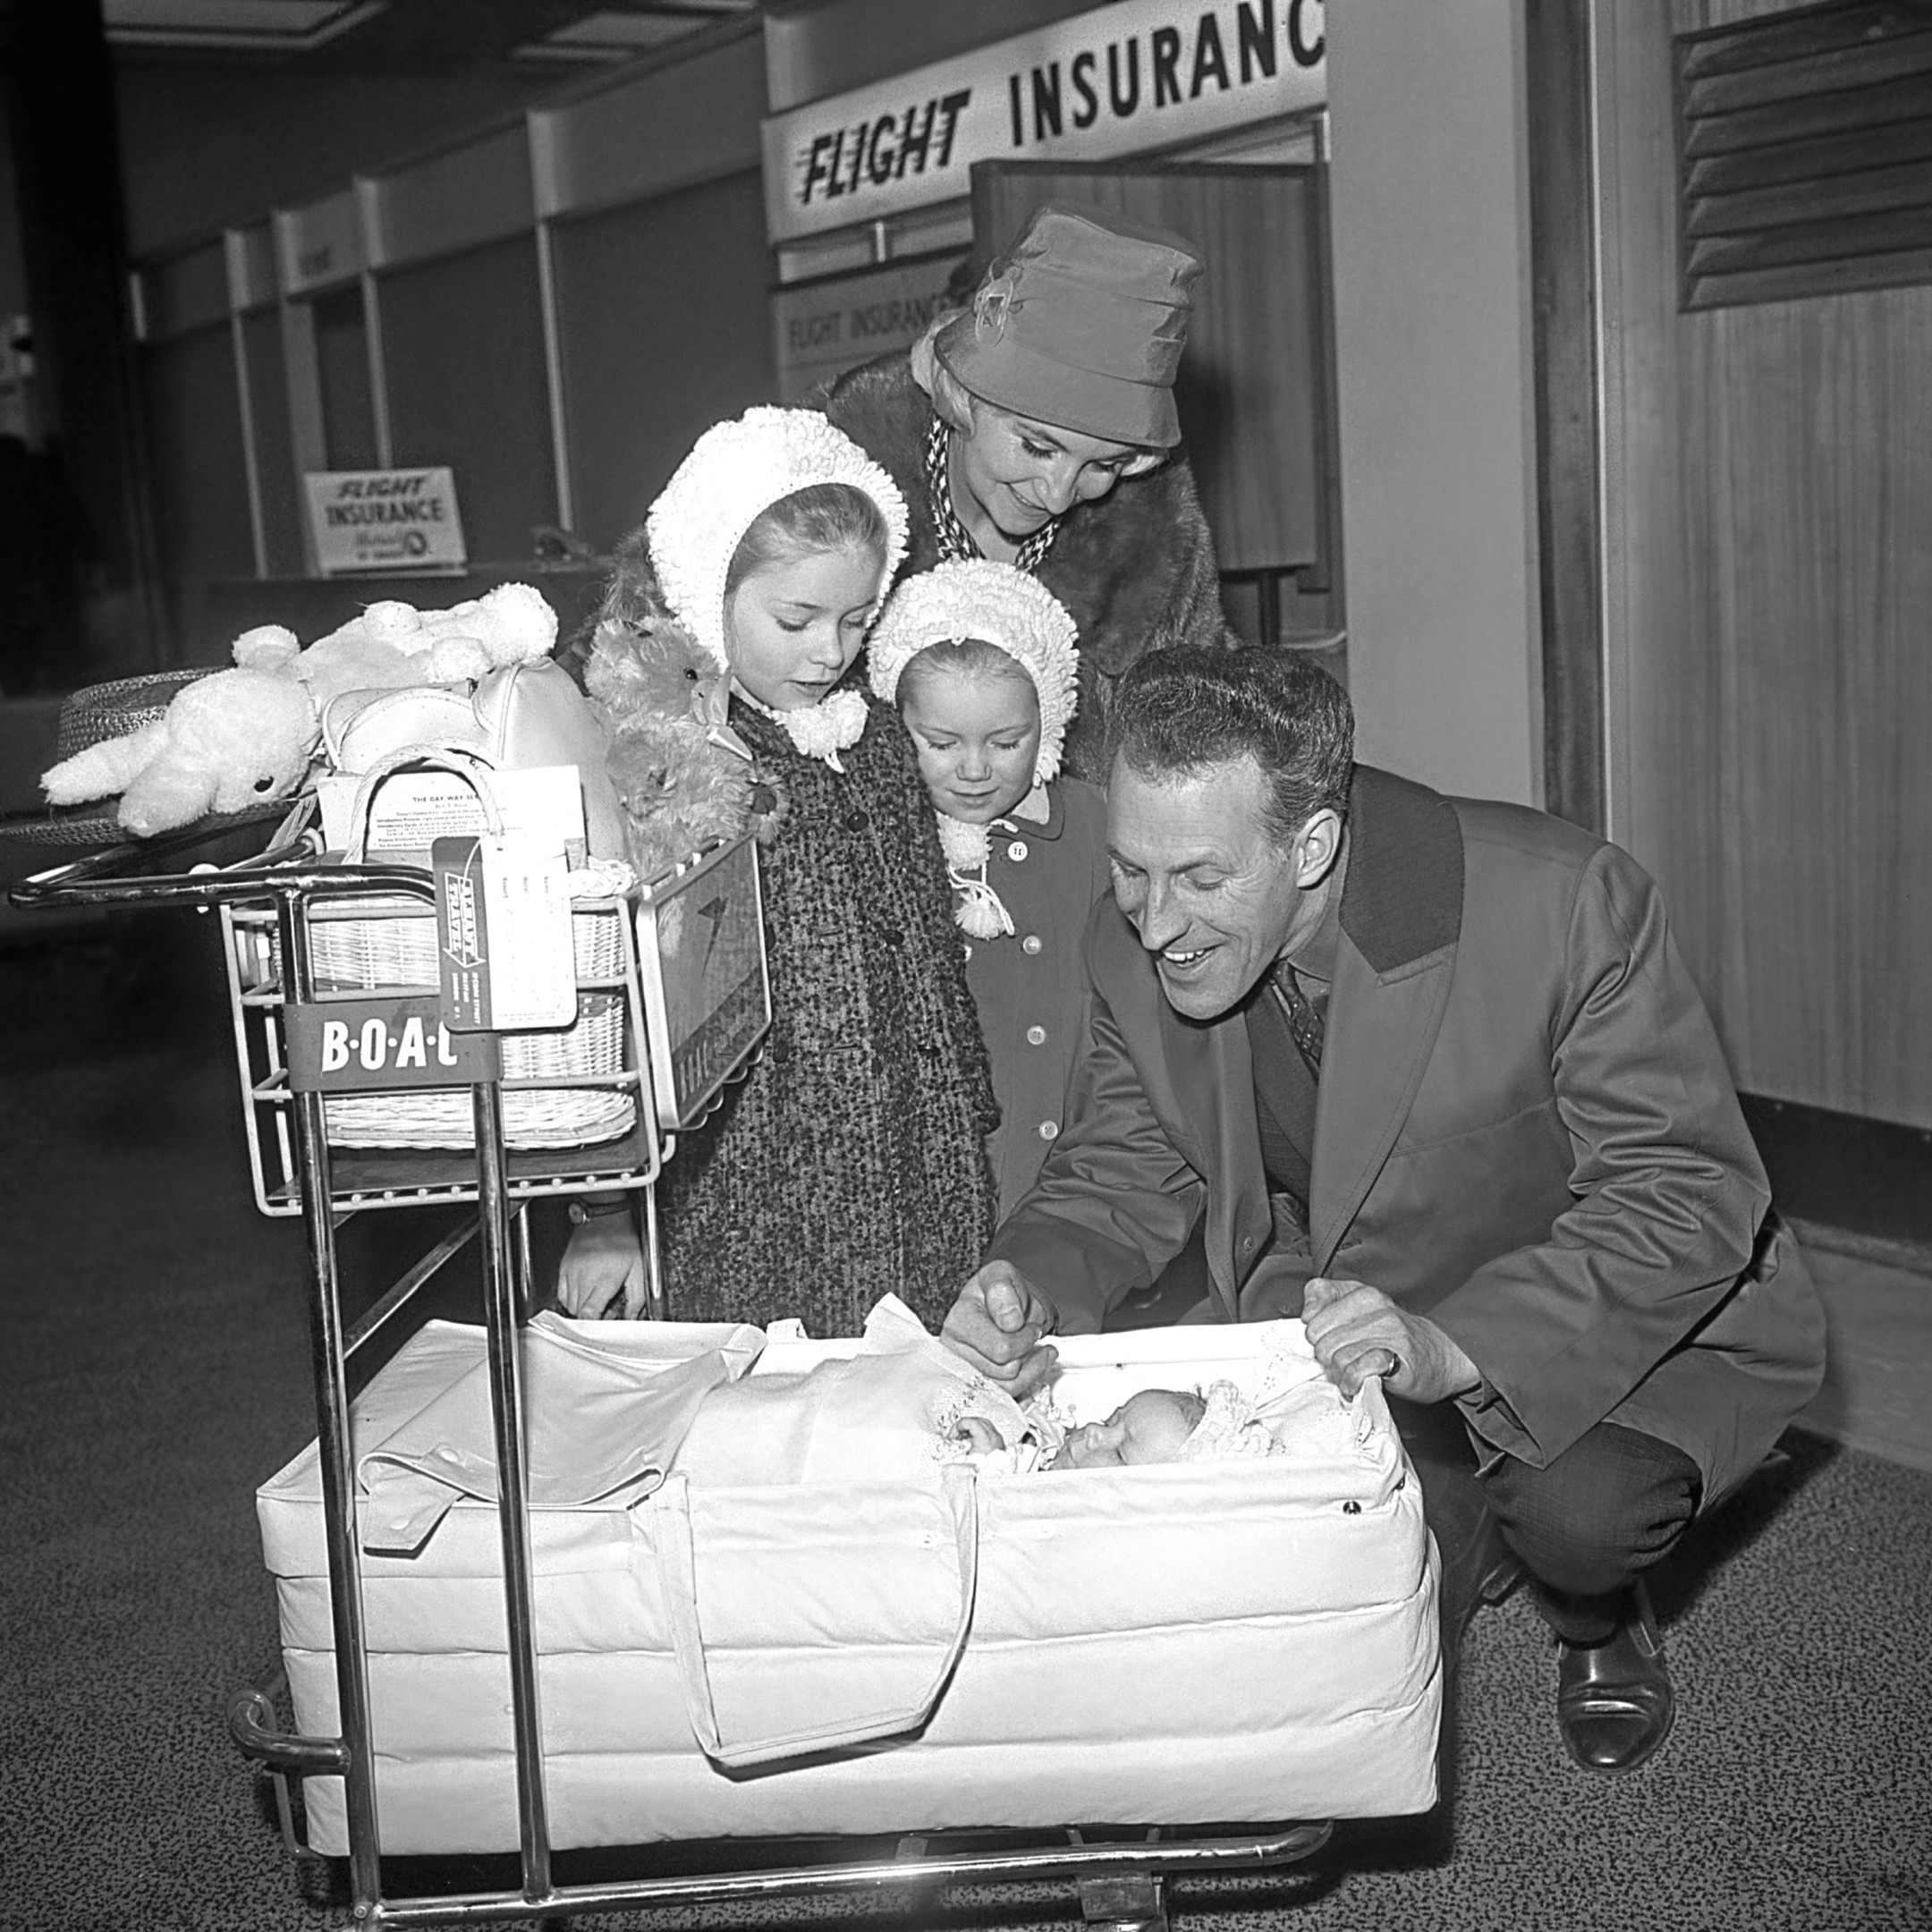 Bruce Forsyth wife his wife Penny and children Debbie, 7, Julie, 4, and 3-month-old Laura. They were leaving for a month's holiday in Barbados.